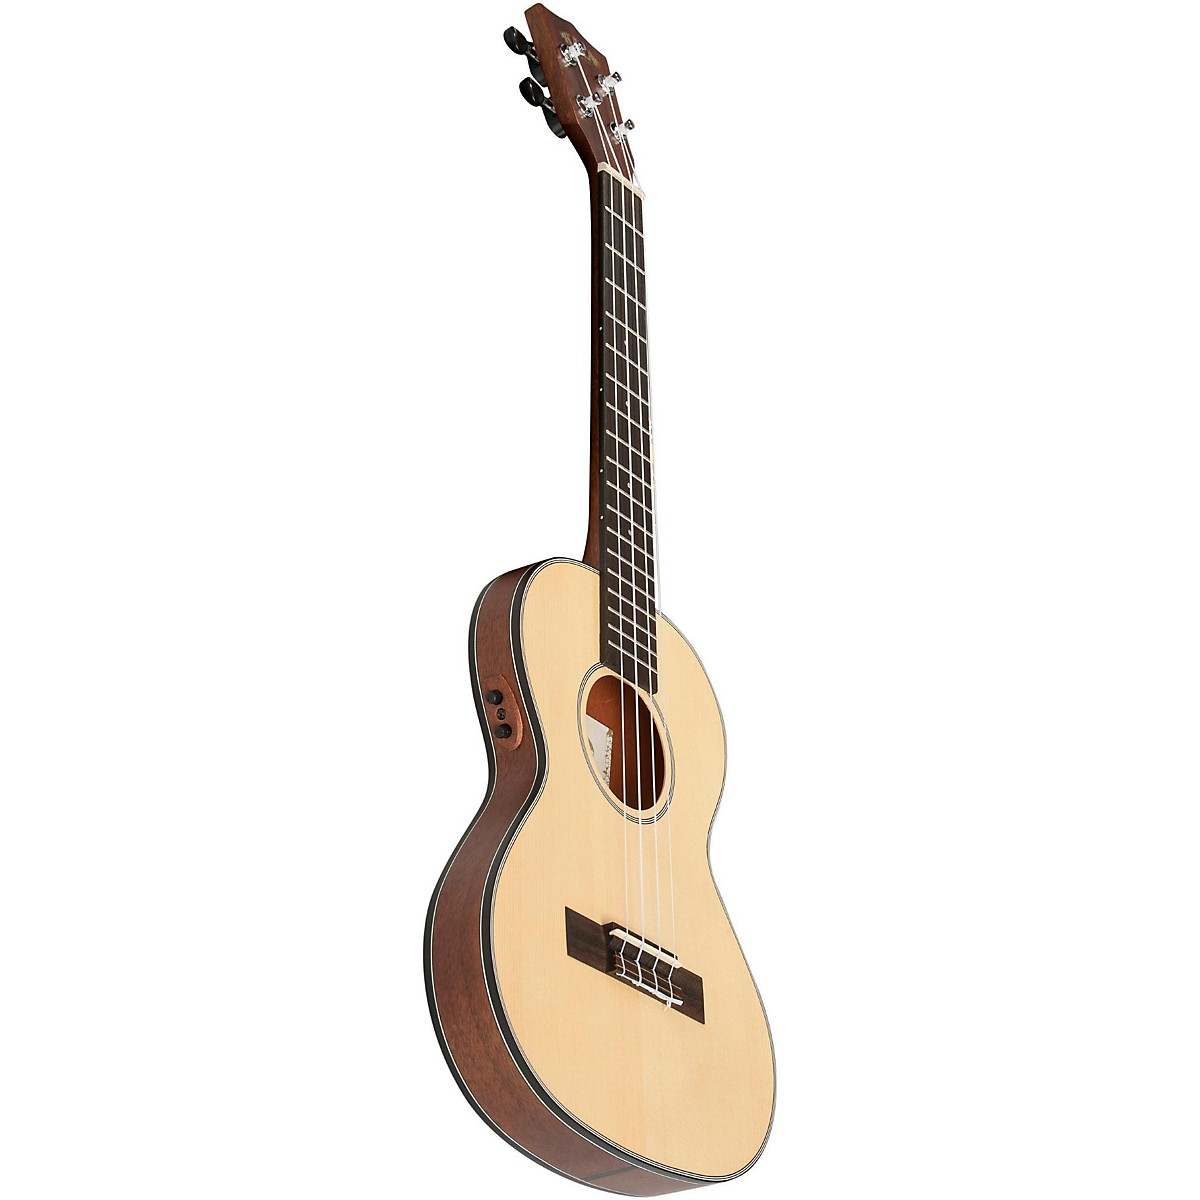 Dean Guitars Ukulele Travel Uke: Kala Mahogany Travel Tenor Acoustic-Electric Ukulele